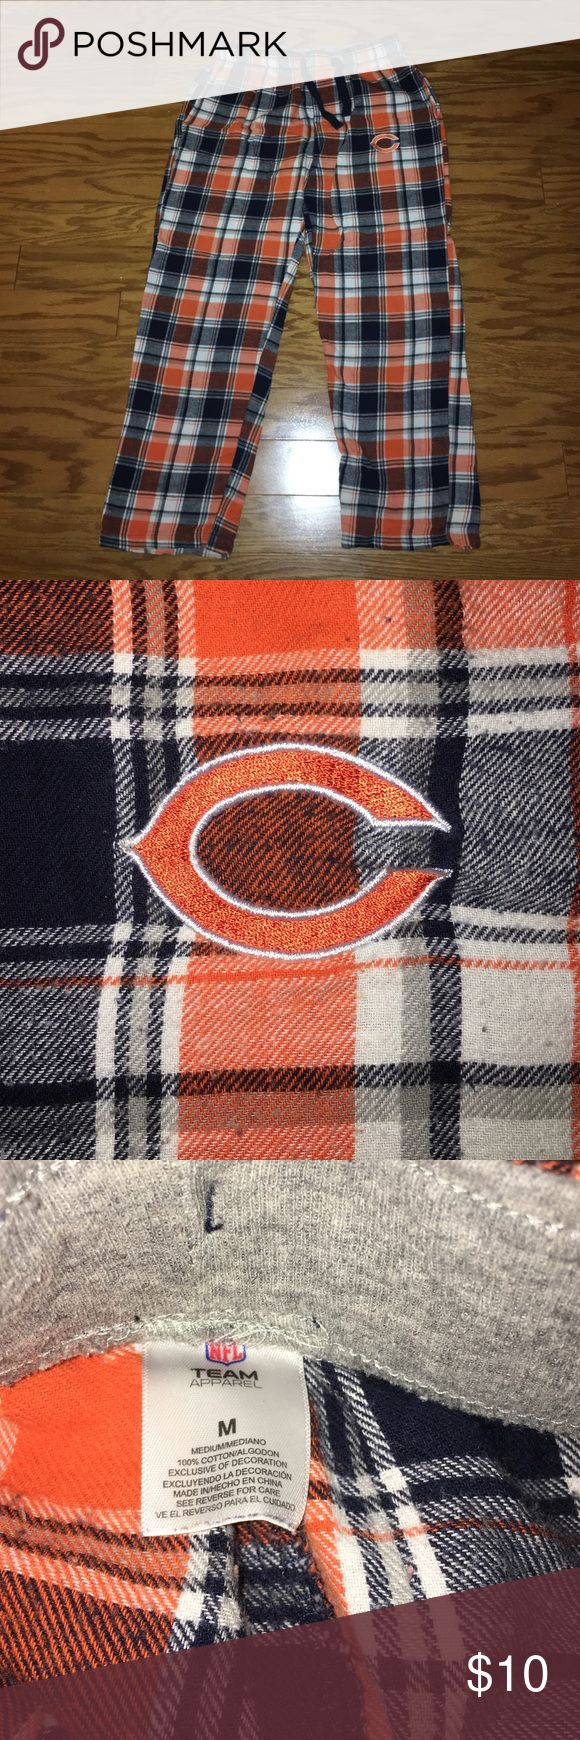 Chicago Bears PJ Pants Chicago Bears Pajama Pants. About: PJ Pants have been worn, but in good condition. Draw sting still in waist. Comes from a smoke-free home. Please ask for additional photos if needed. Open to offers & bundles but no trades. NFL Team Intimates & Sleepwear Pajamas